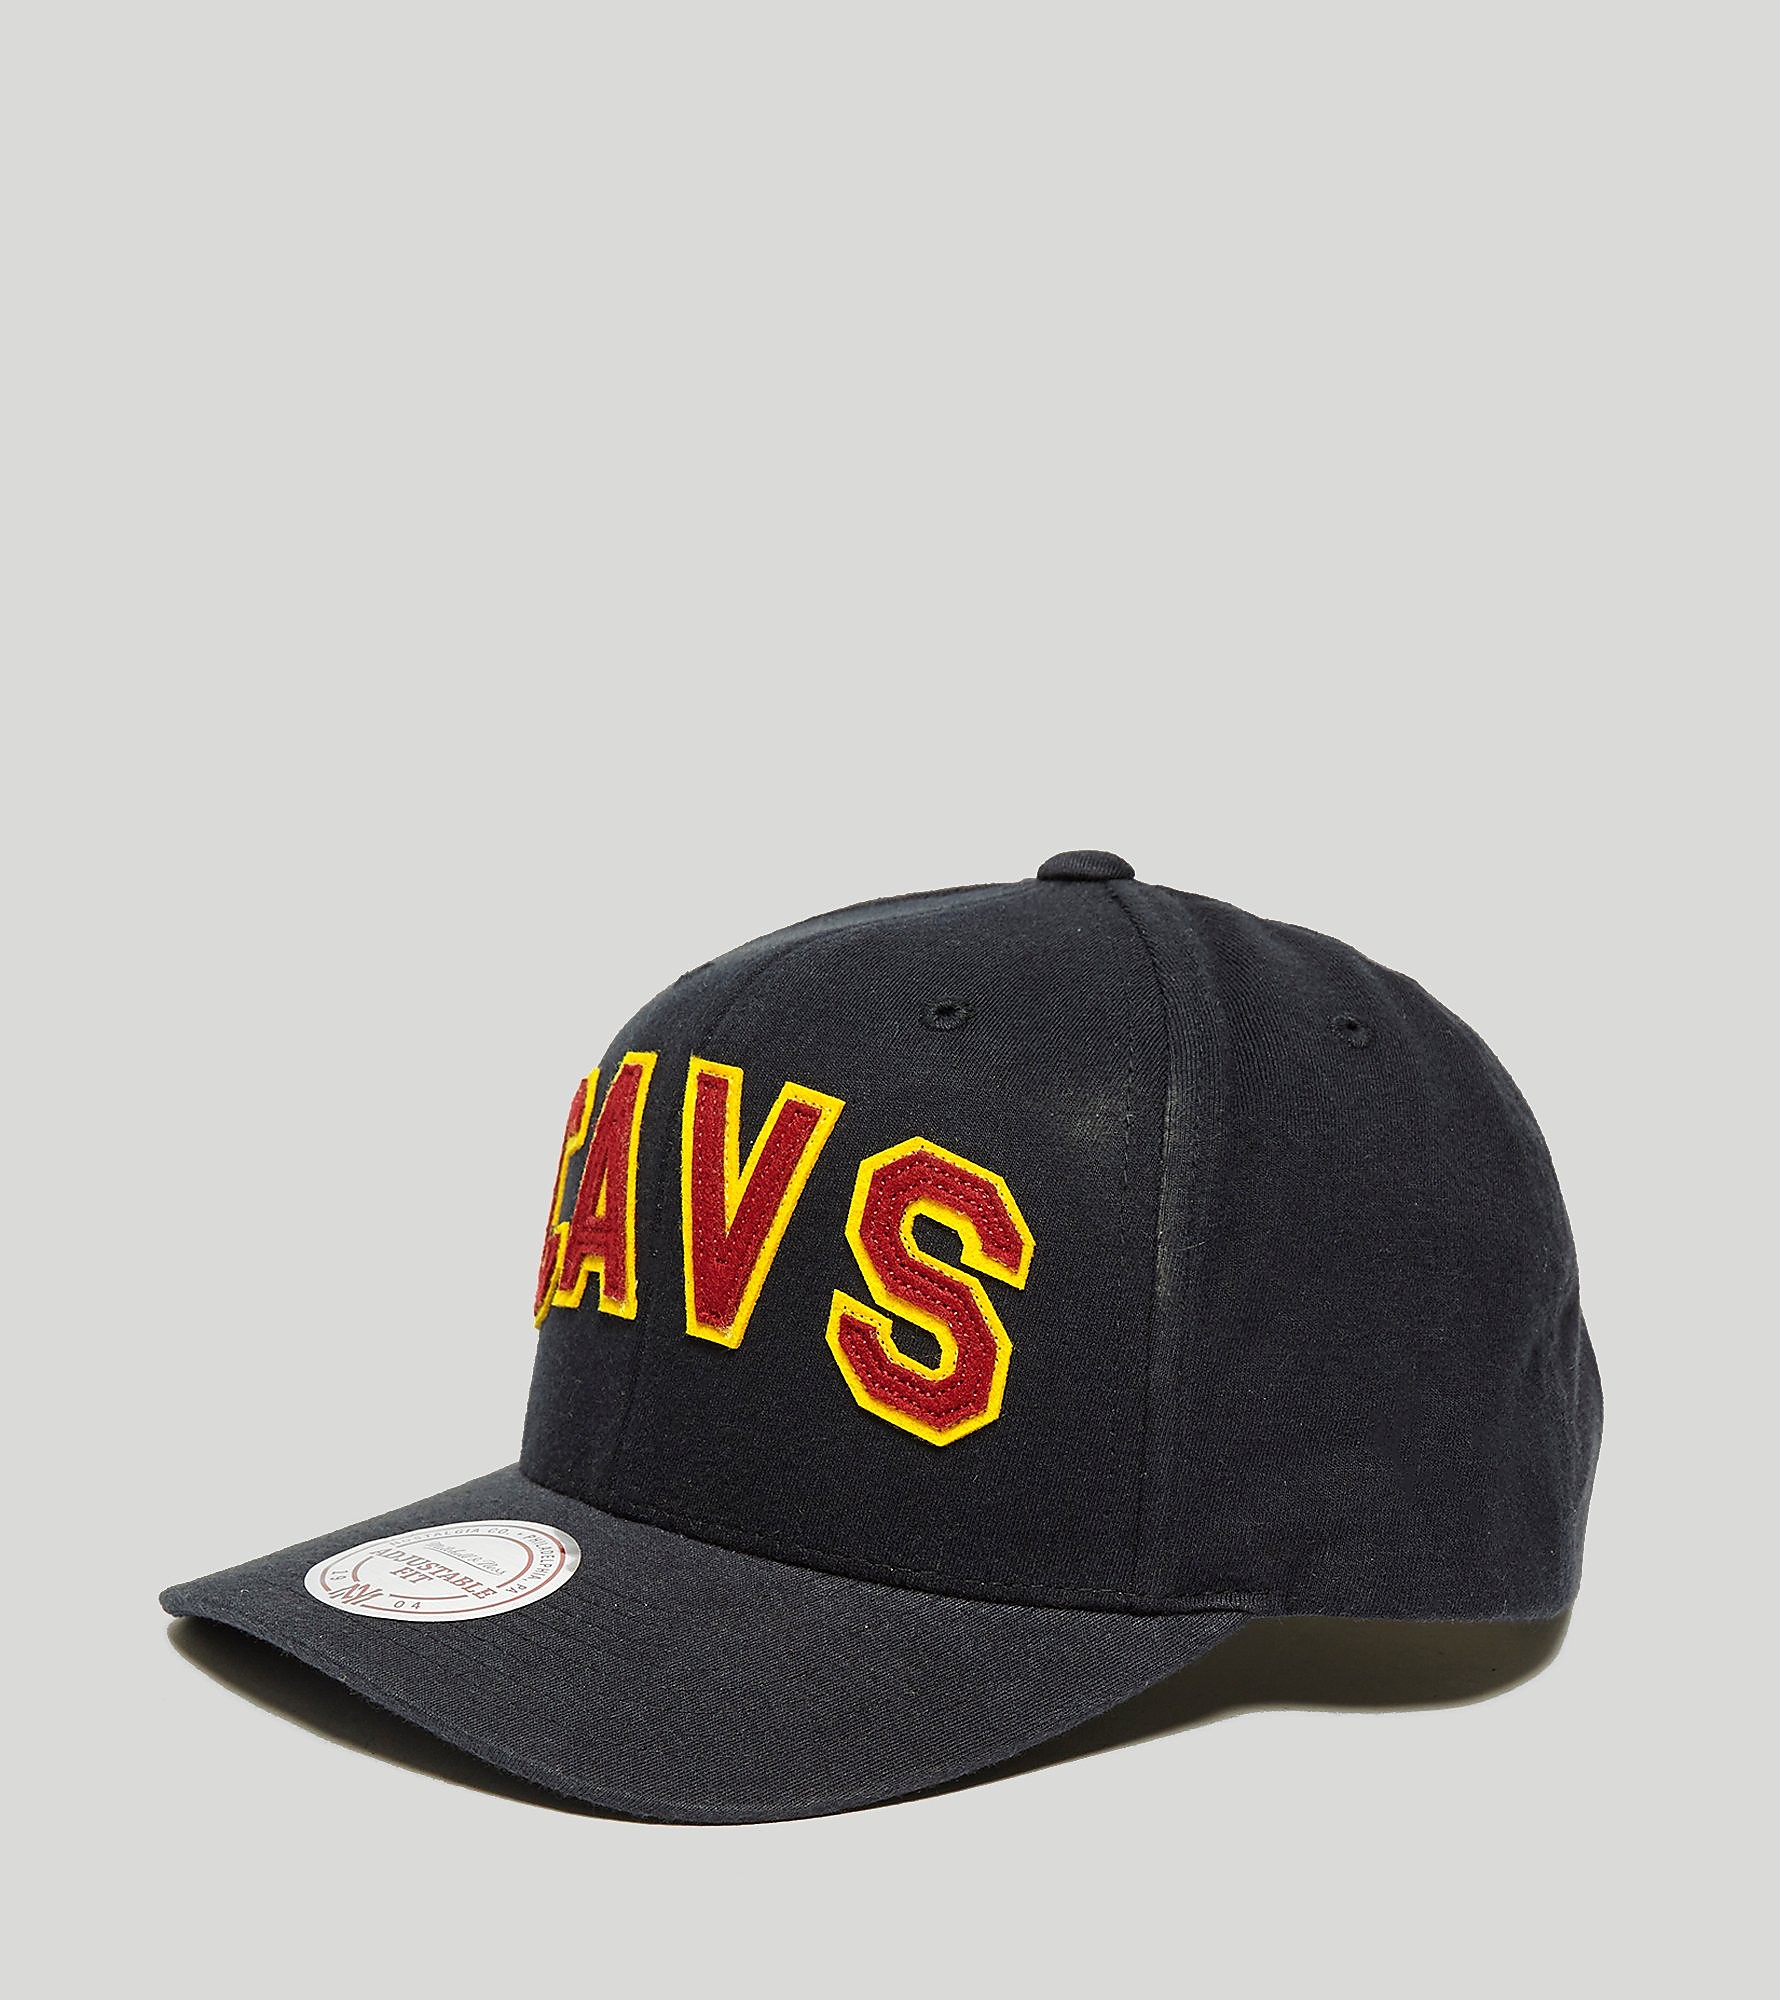 Mitchell & Ness College Curved Cavs Cap - size? Exclusive